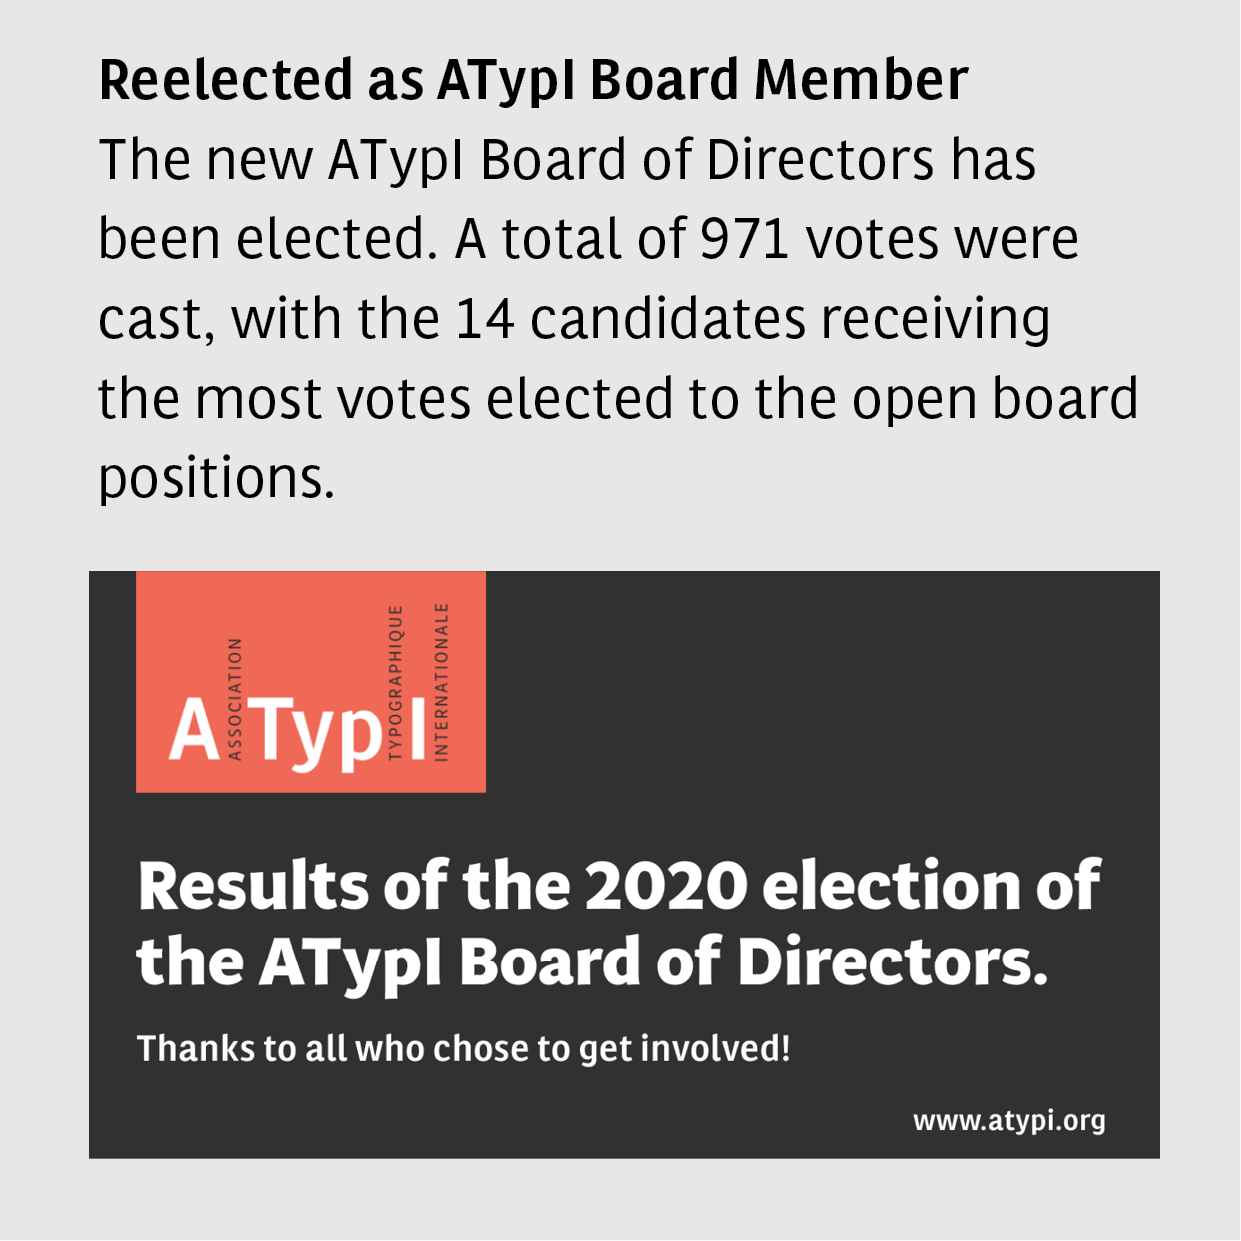 News: Reelected as ATypI Board Member 2020